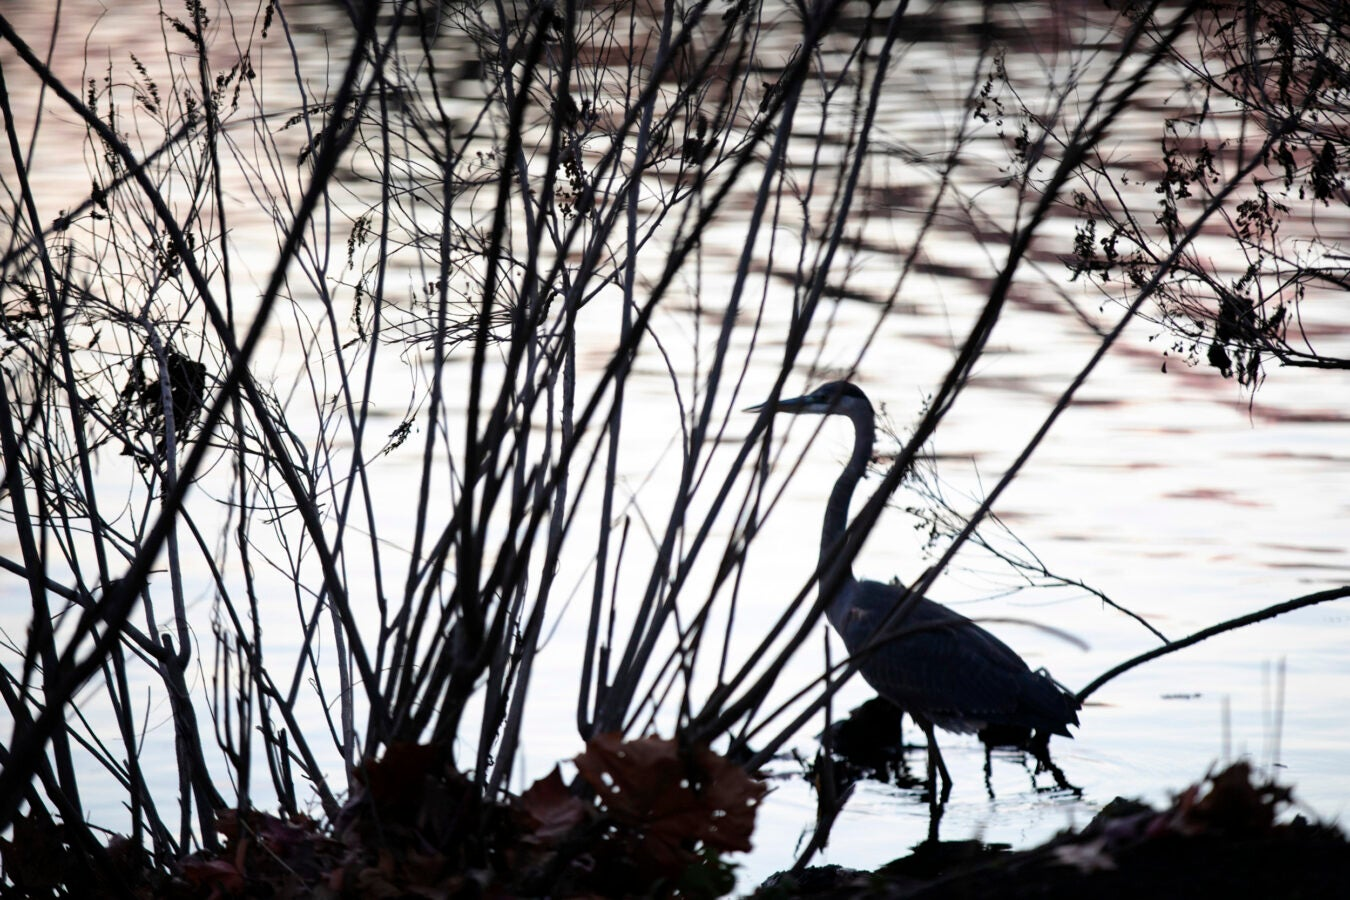 A heron searches for its morning snack at dawn.